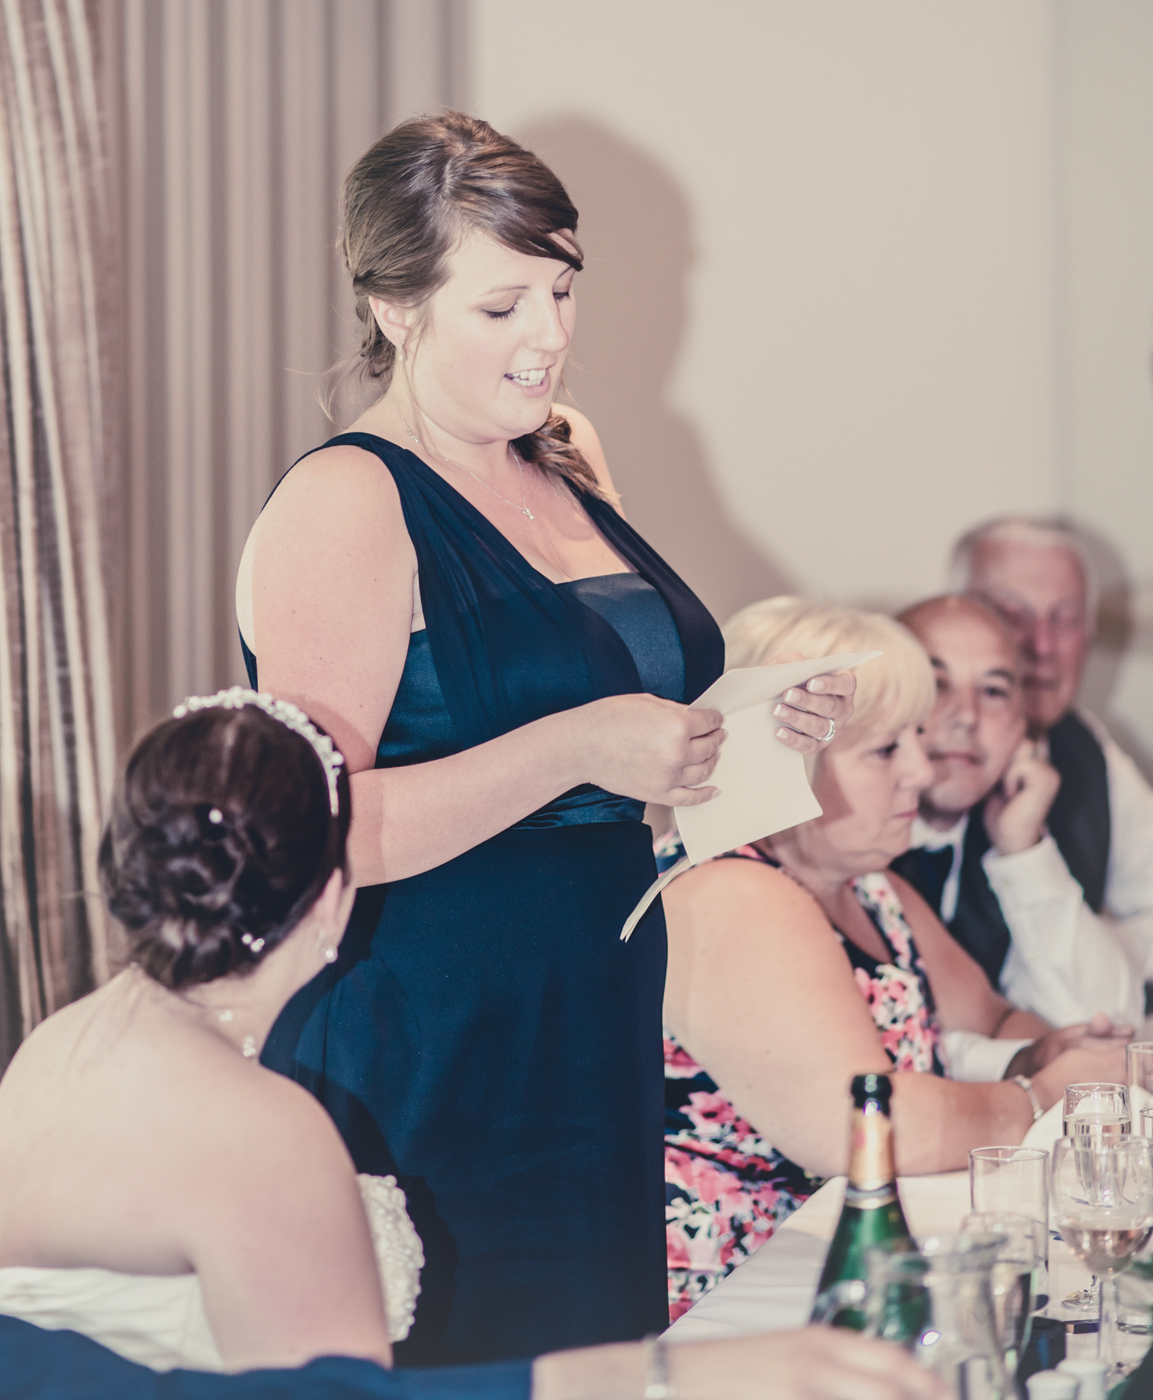 530 - Chris and Natalies Wedding (MAIN) - DO NOT SHARE THIS IMAGES ONLINE -4812.JPG